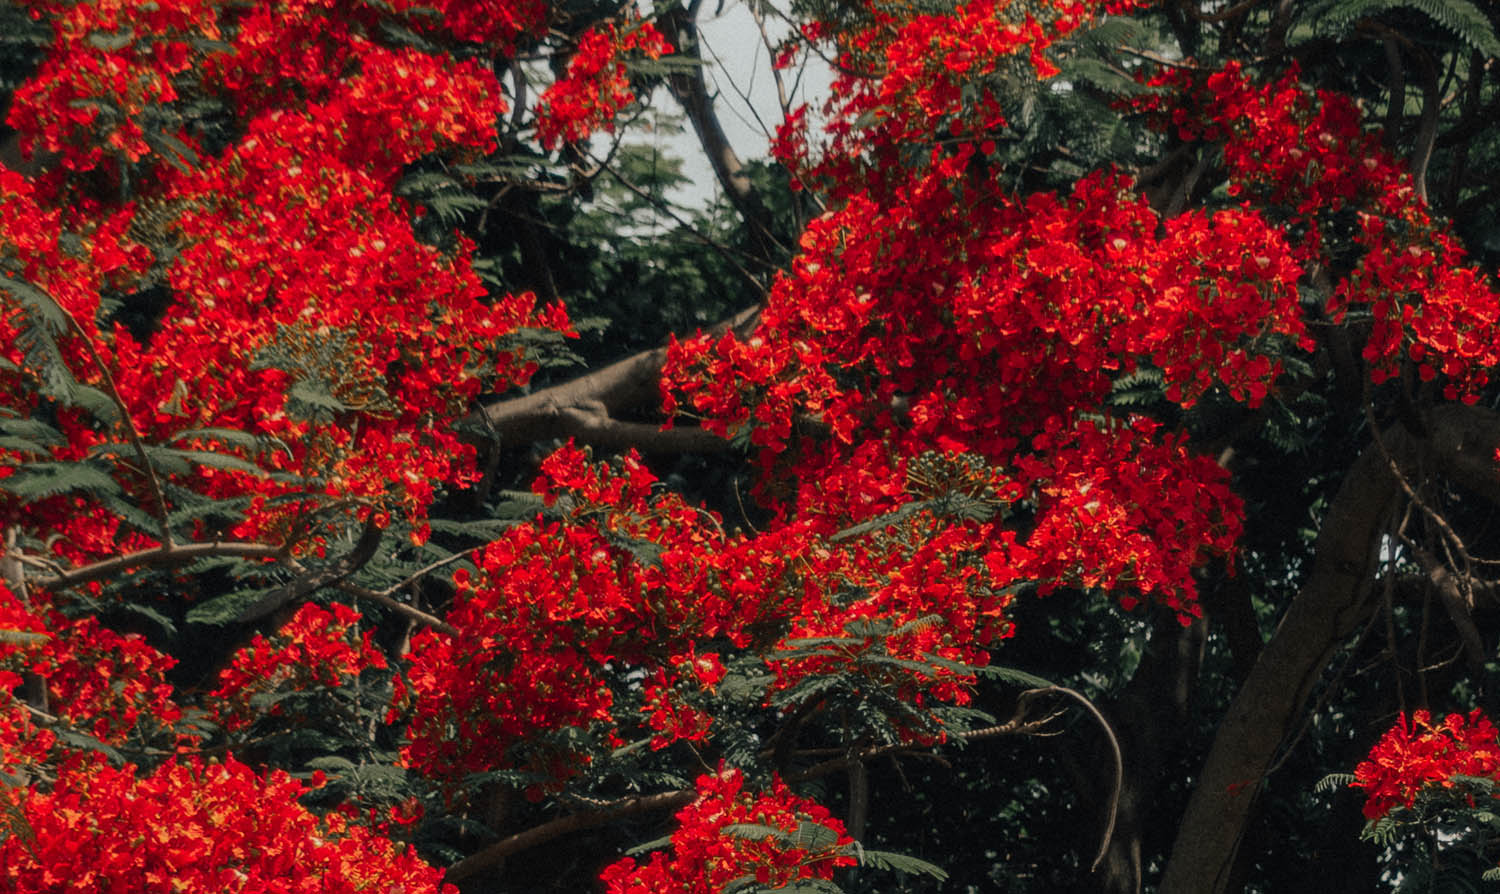 Beautiful tree with red flowers in Jamaica